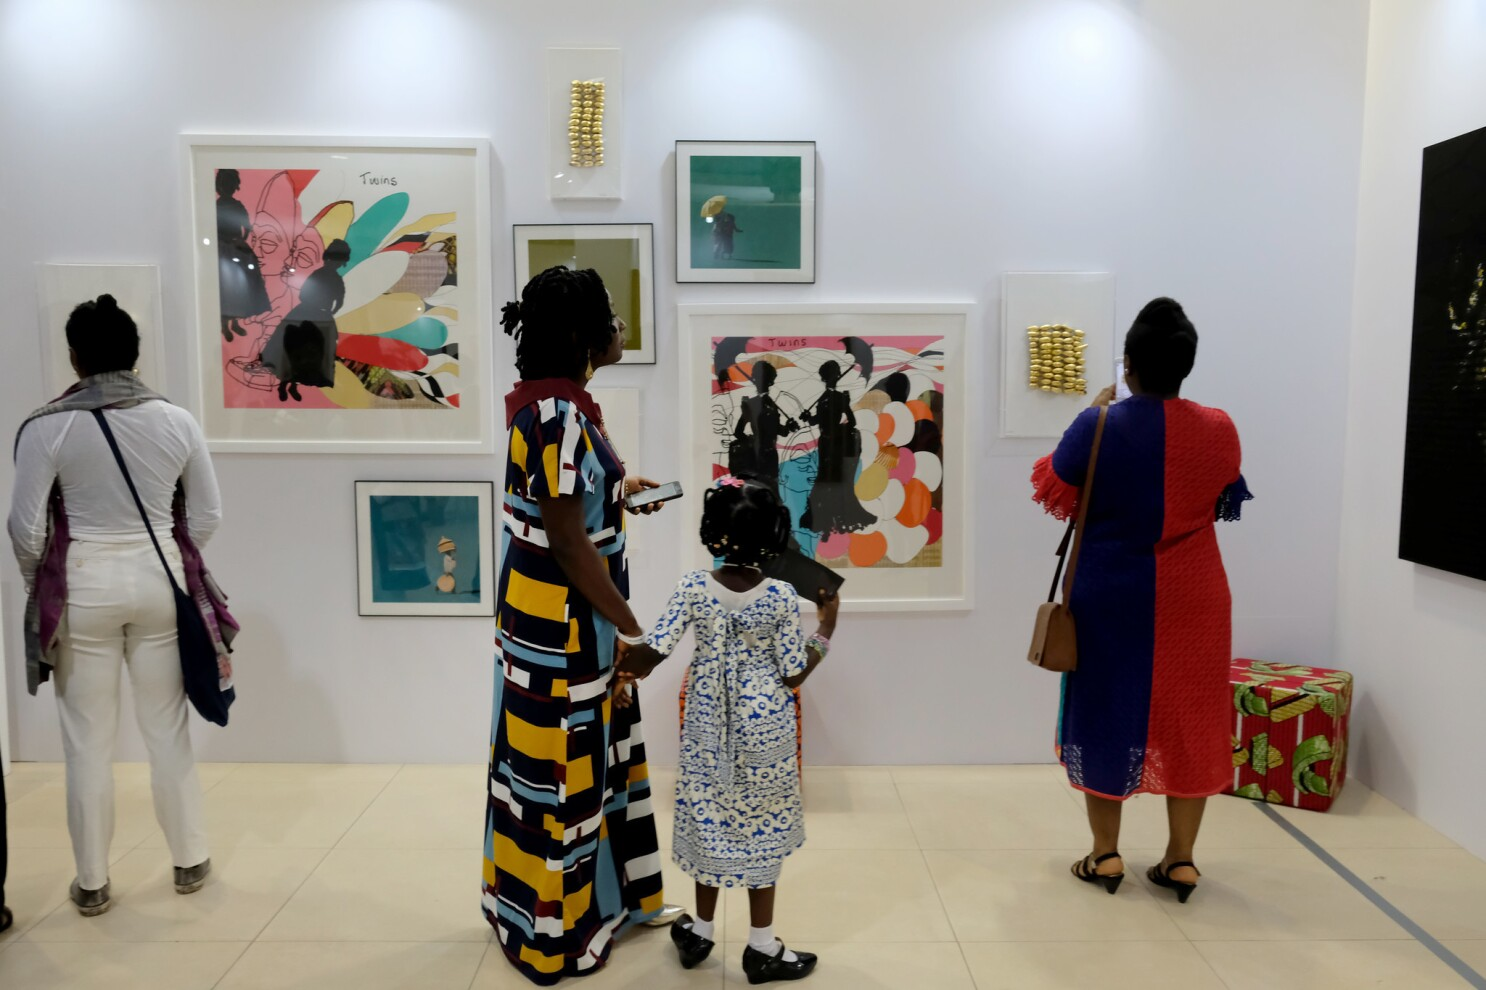 As Demand For Nigerian Art Booms Abroad A Homegrown Movement Looks To Inspire Domestic Collectors Too Los Angeles Times